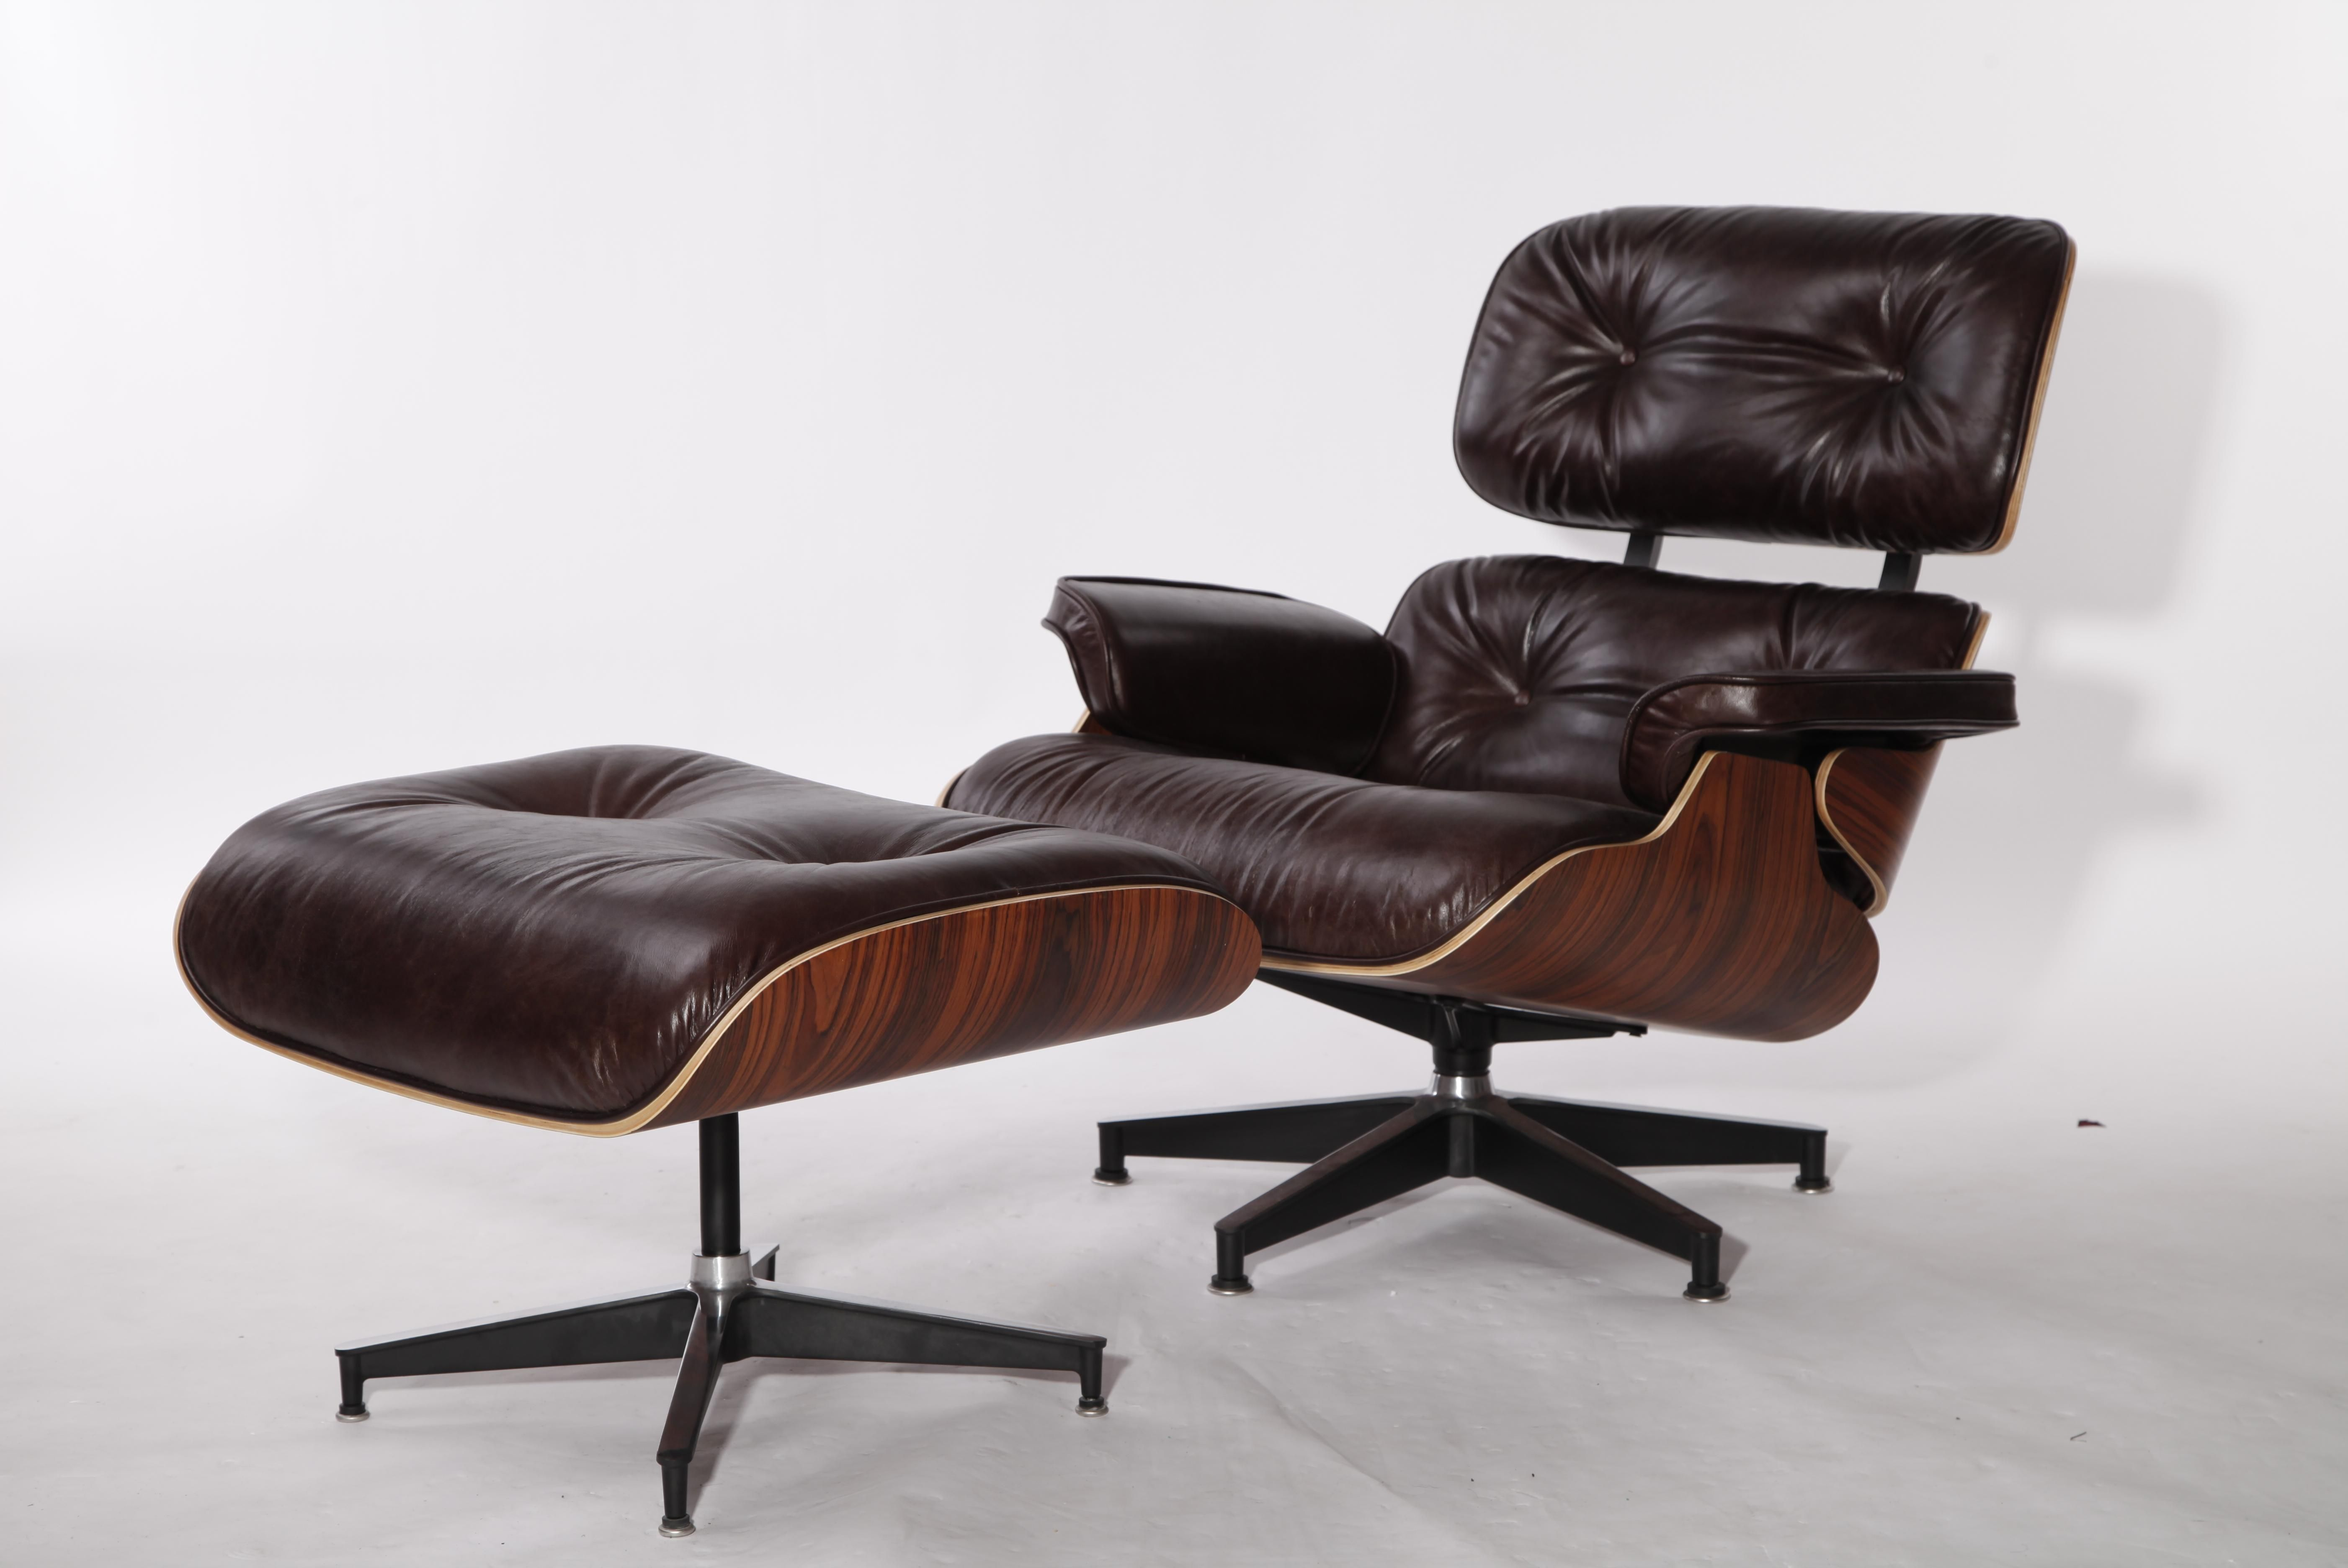 Eames Lounge Chair Original vintage leather eames lounge chair eames lounge chair and ottoman